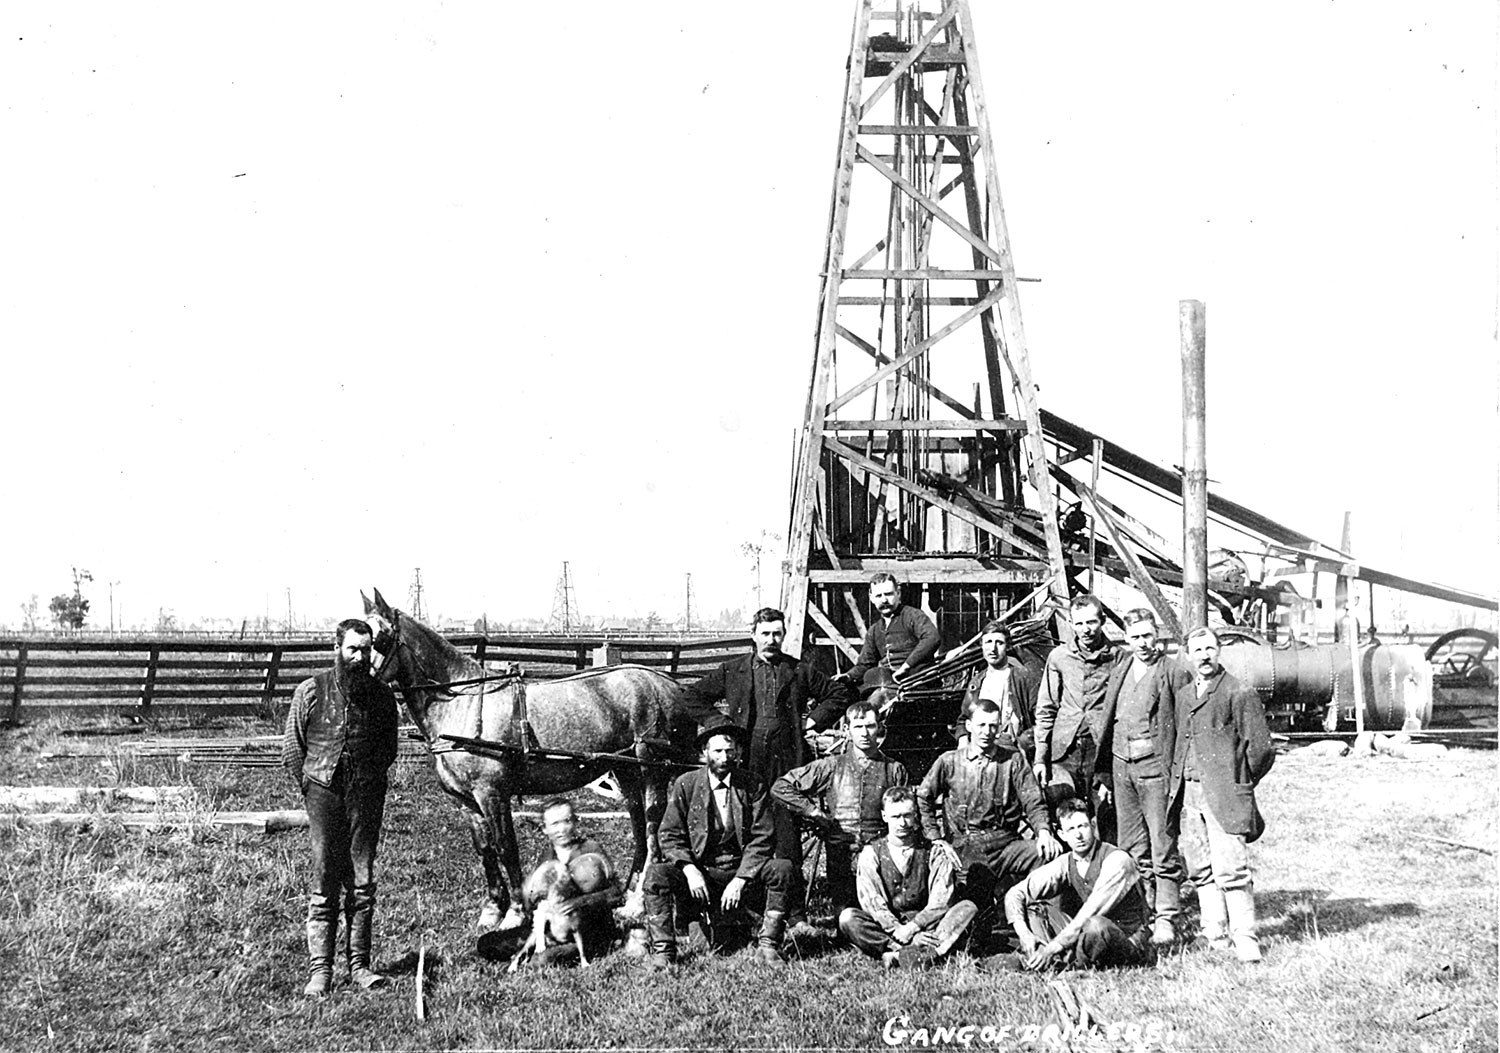 A drill crew at Petrolia in 1910, standing before their steam-powered drilling rig